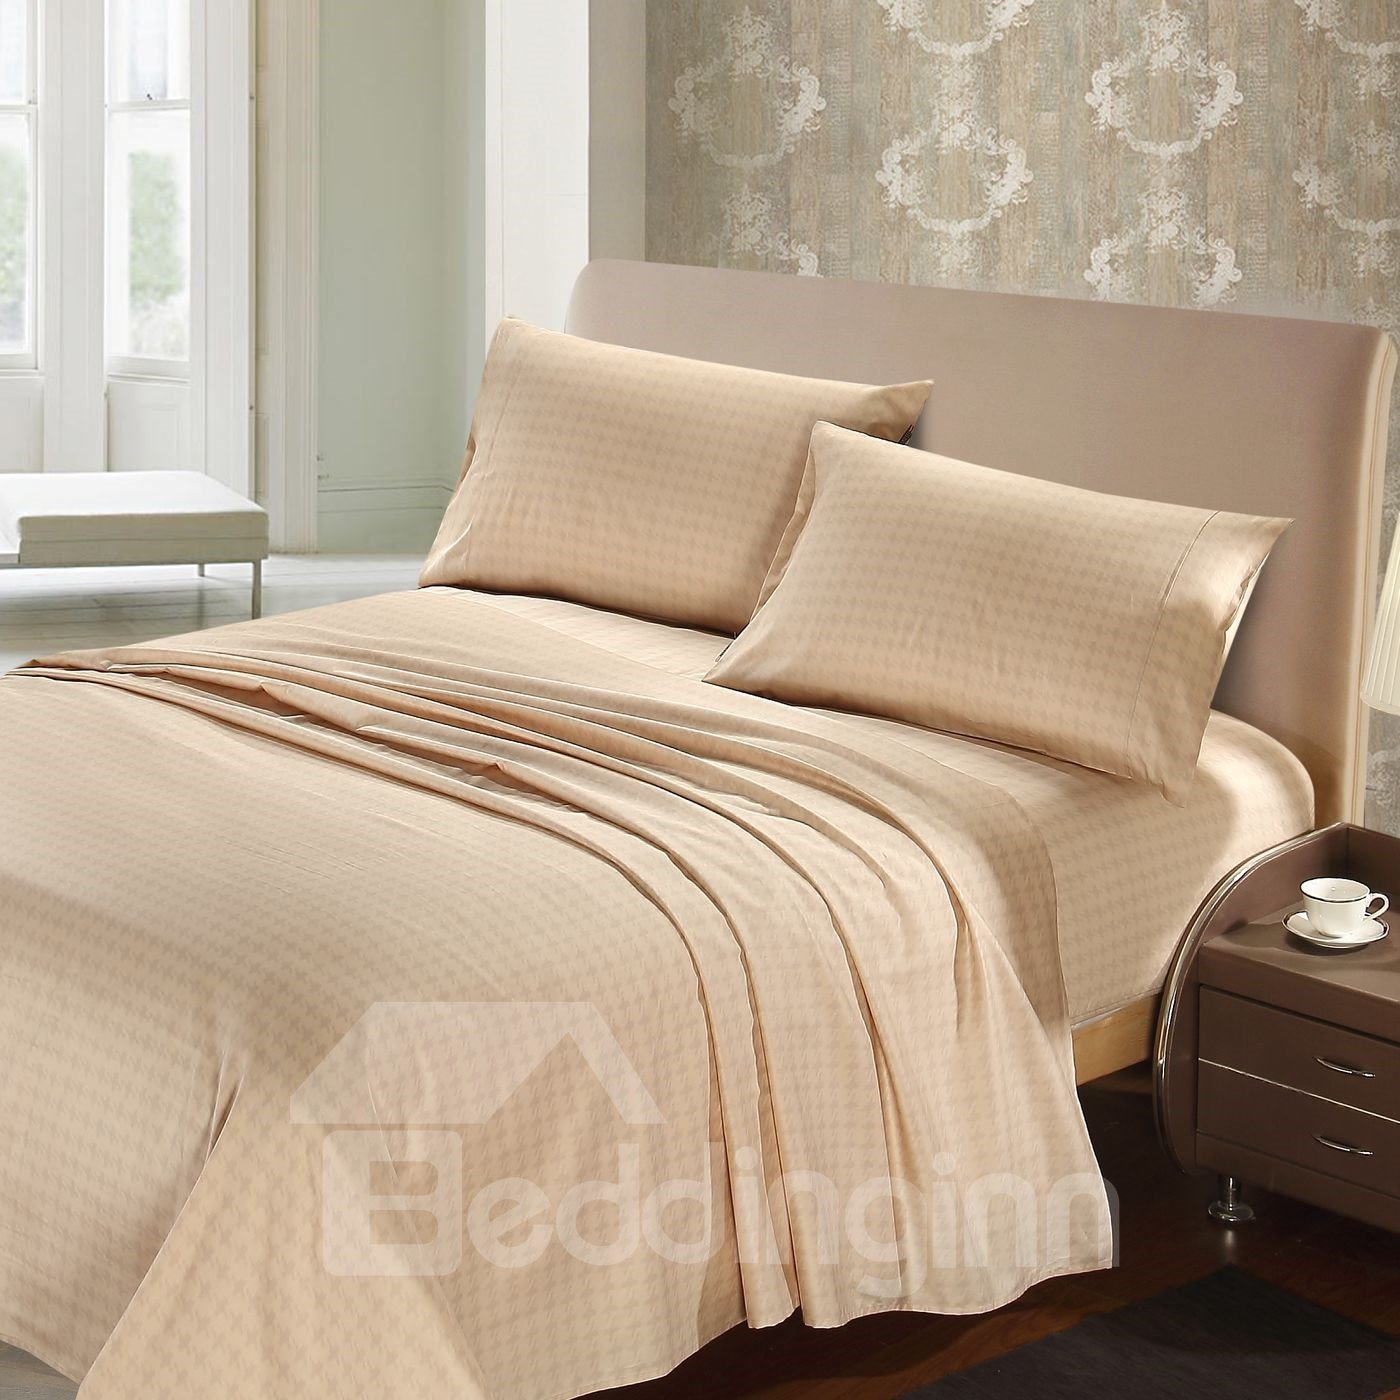 Soft and Skin Care 4-Piece 100% Cotton Sheet Set